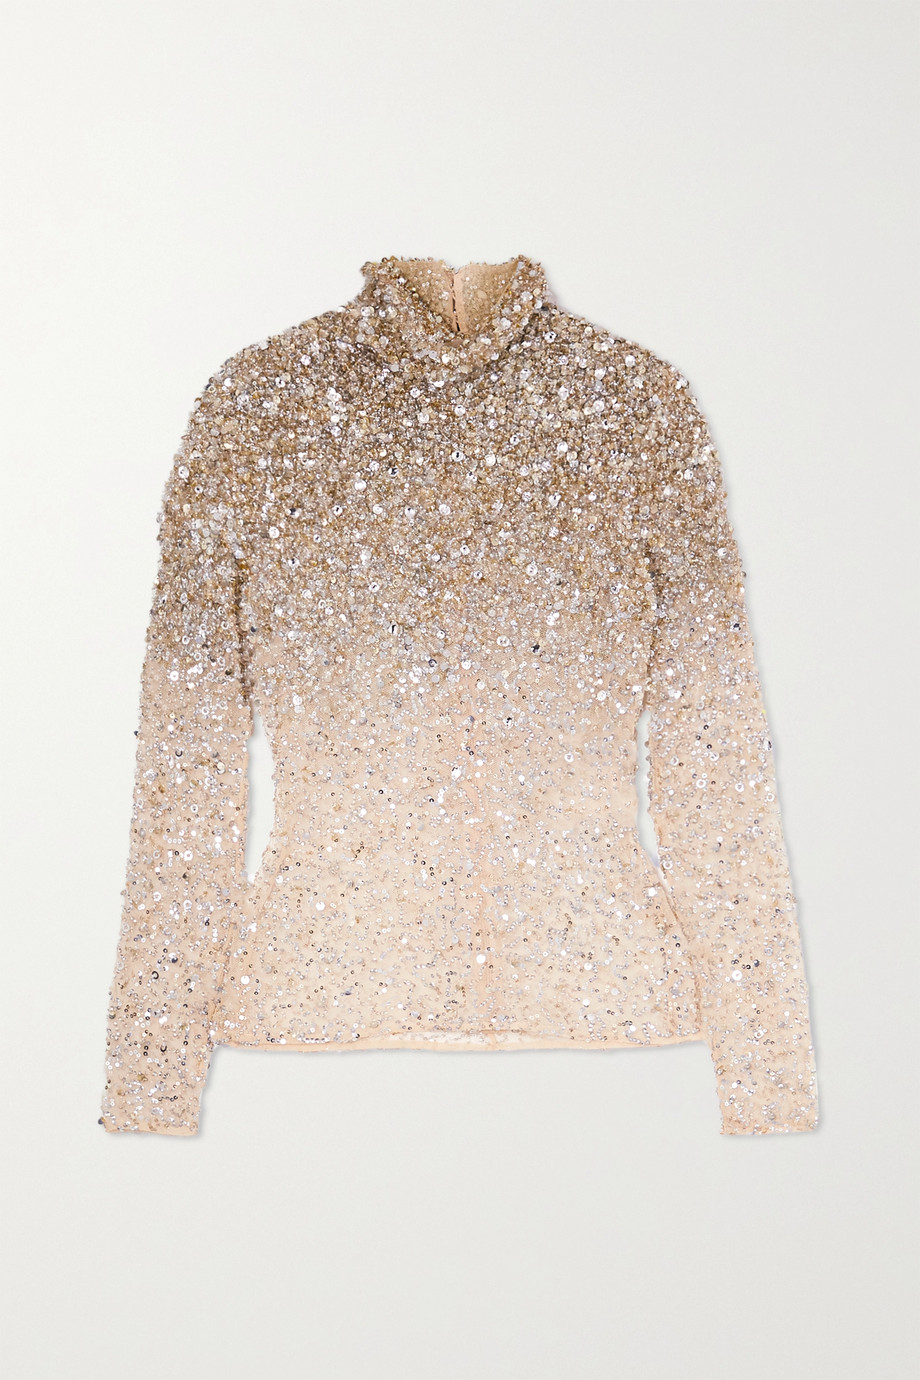 VALENTINO Sequin-embellished cotton-blend mesh turtleneck top